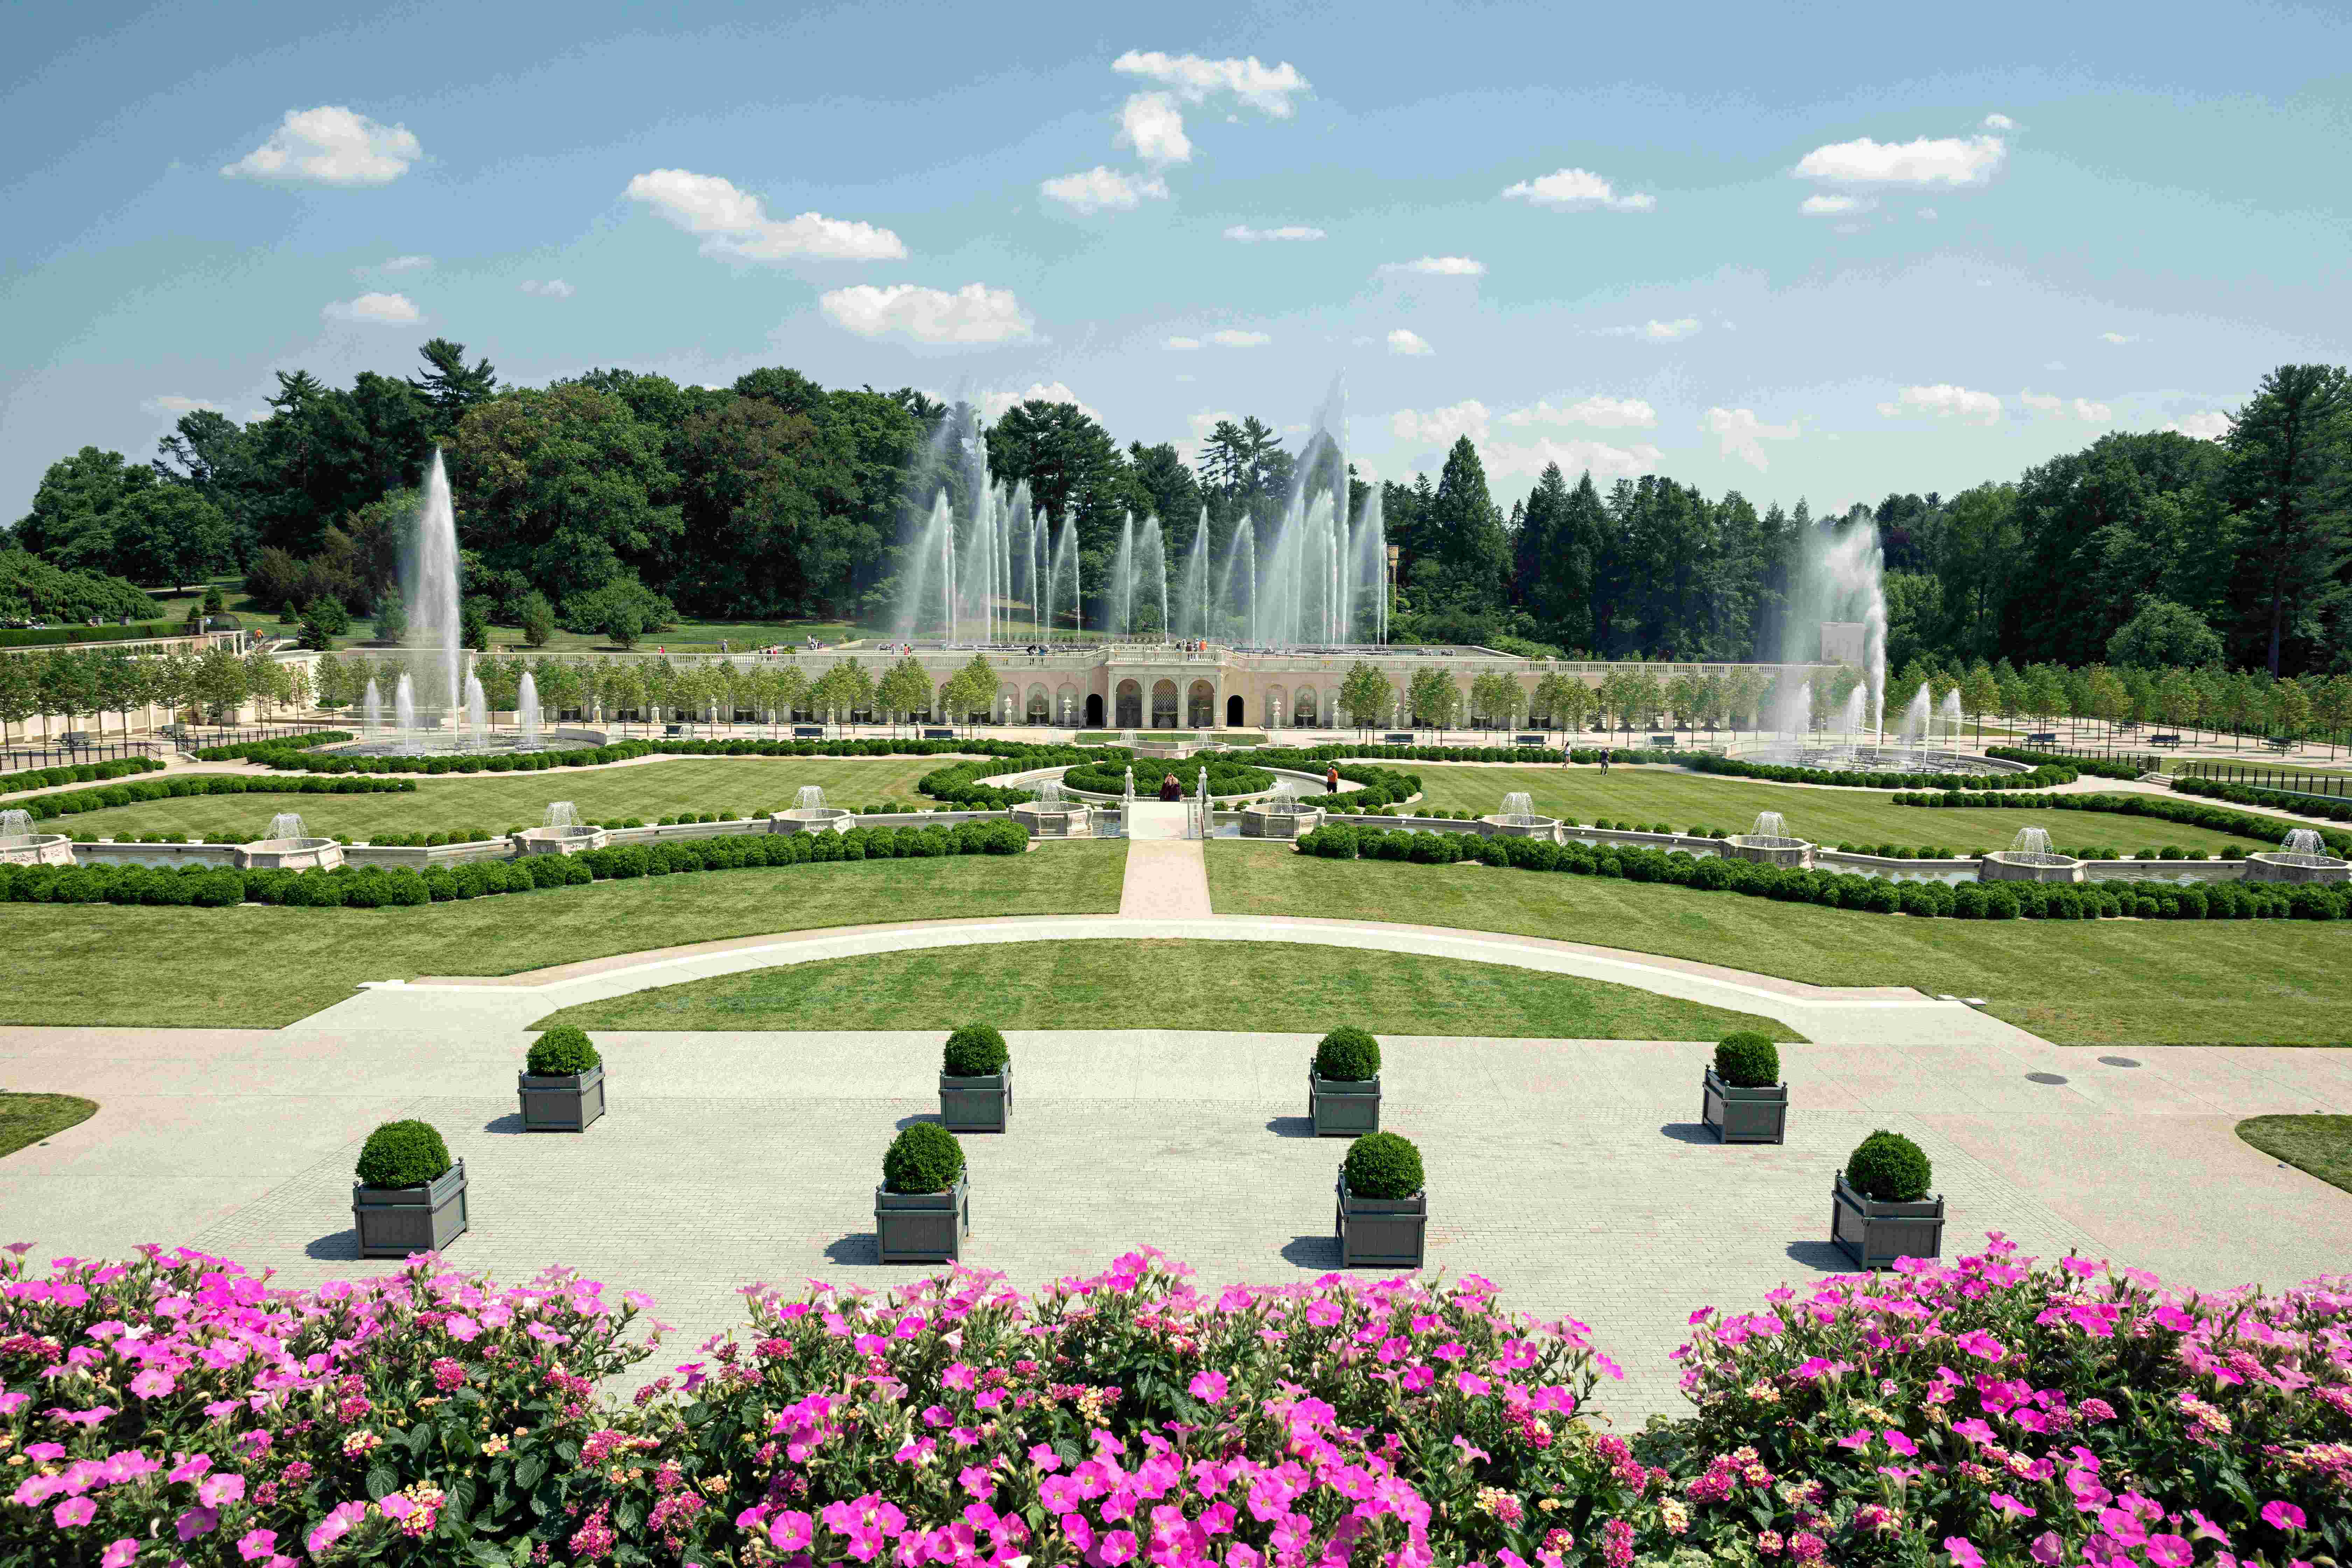 photo longwood gardens beautiful landscape with innovative water features and fountains walk paths shrubs - Live Garden